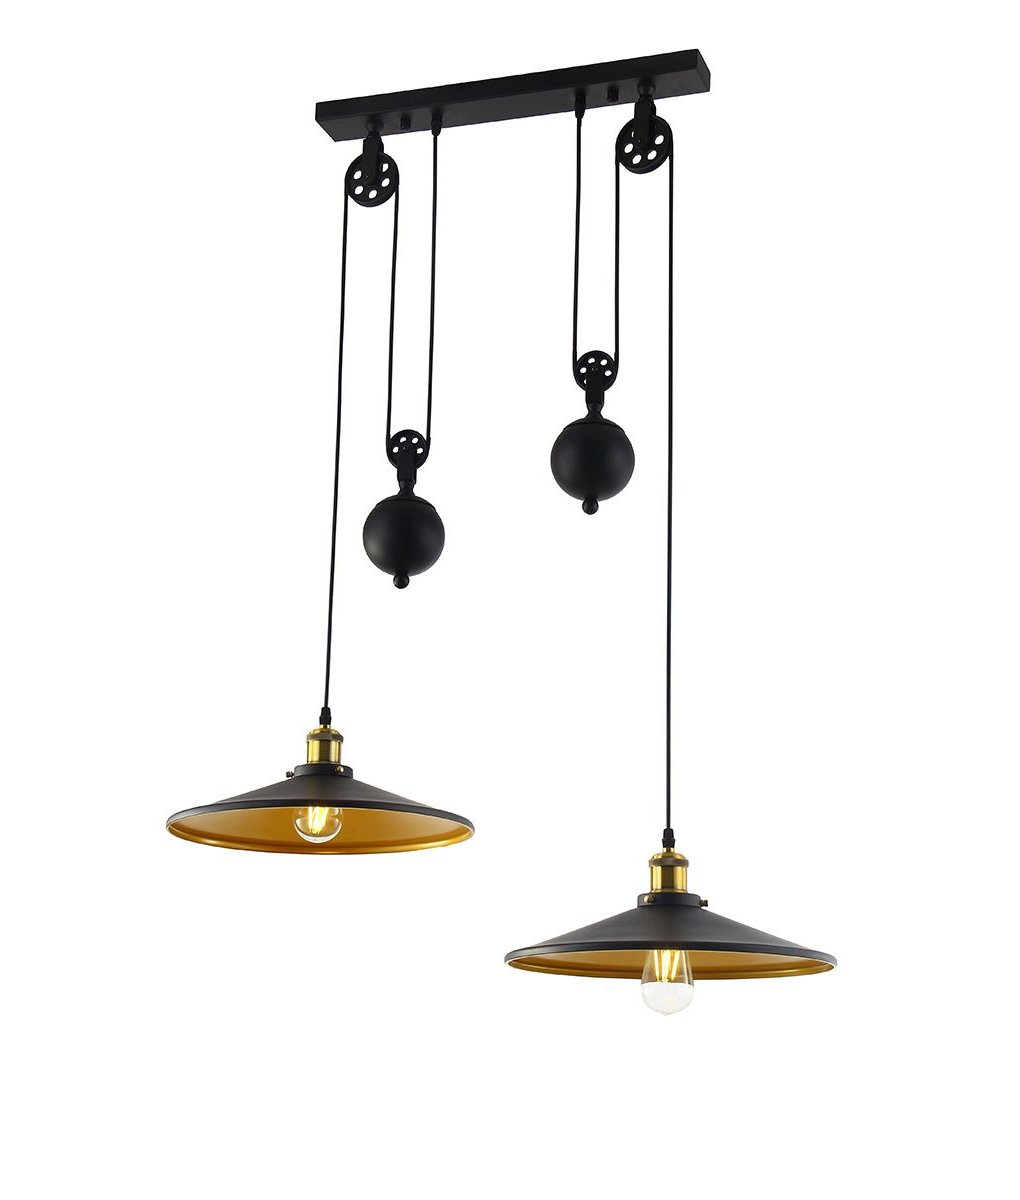 2019 A Metal Rise And Fall Pendant Ideal For Dining Tables Or regarding Ariel 3-Light Kitchen Island Dome Pendants